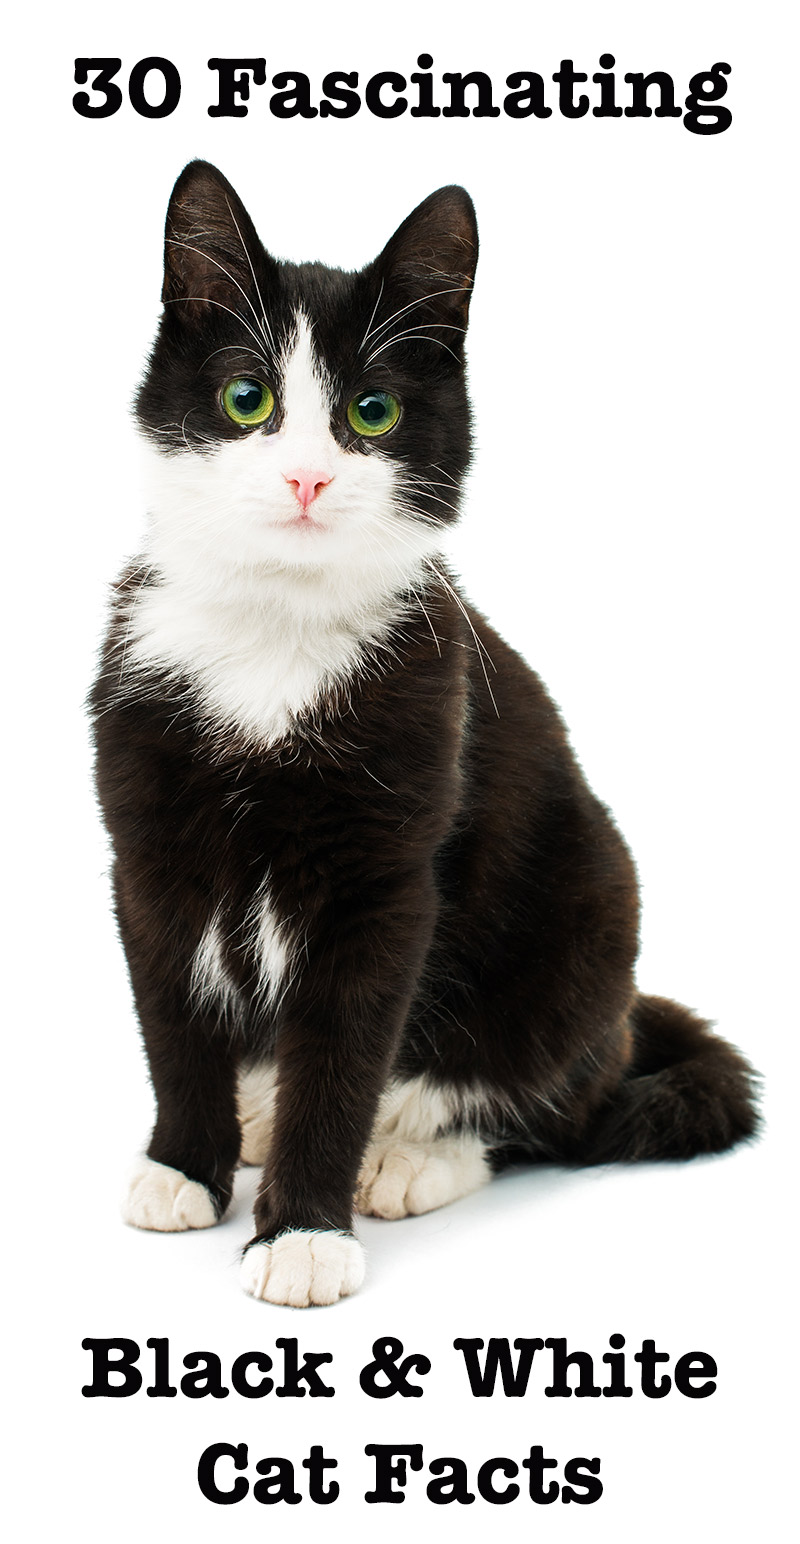 black and white cat Google Search in 2020 Cat facts